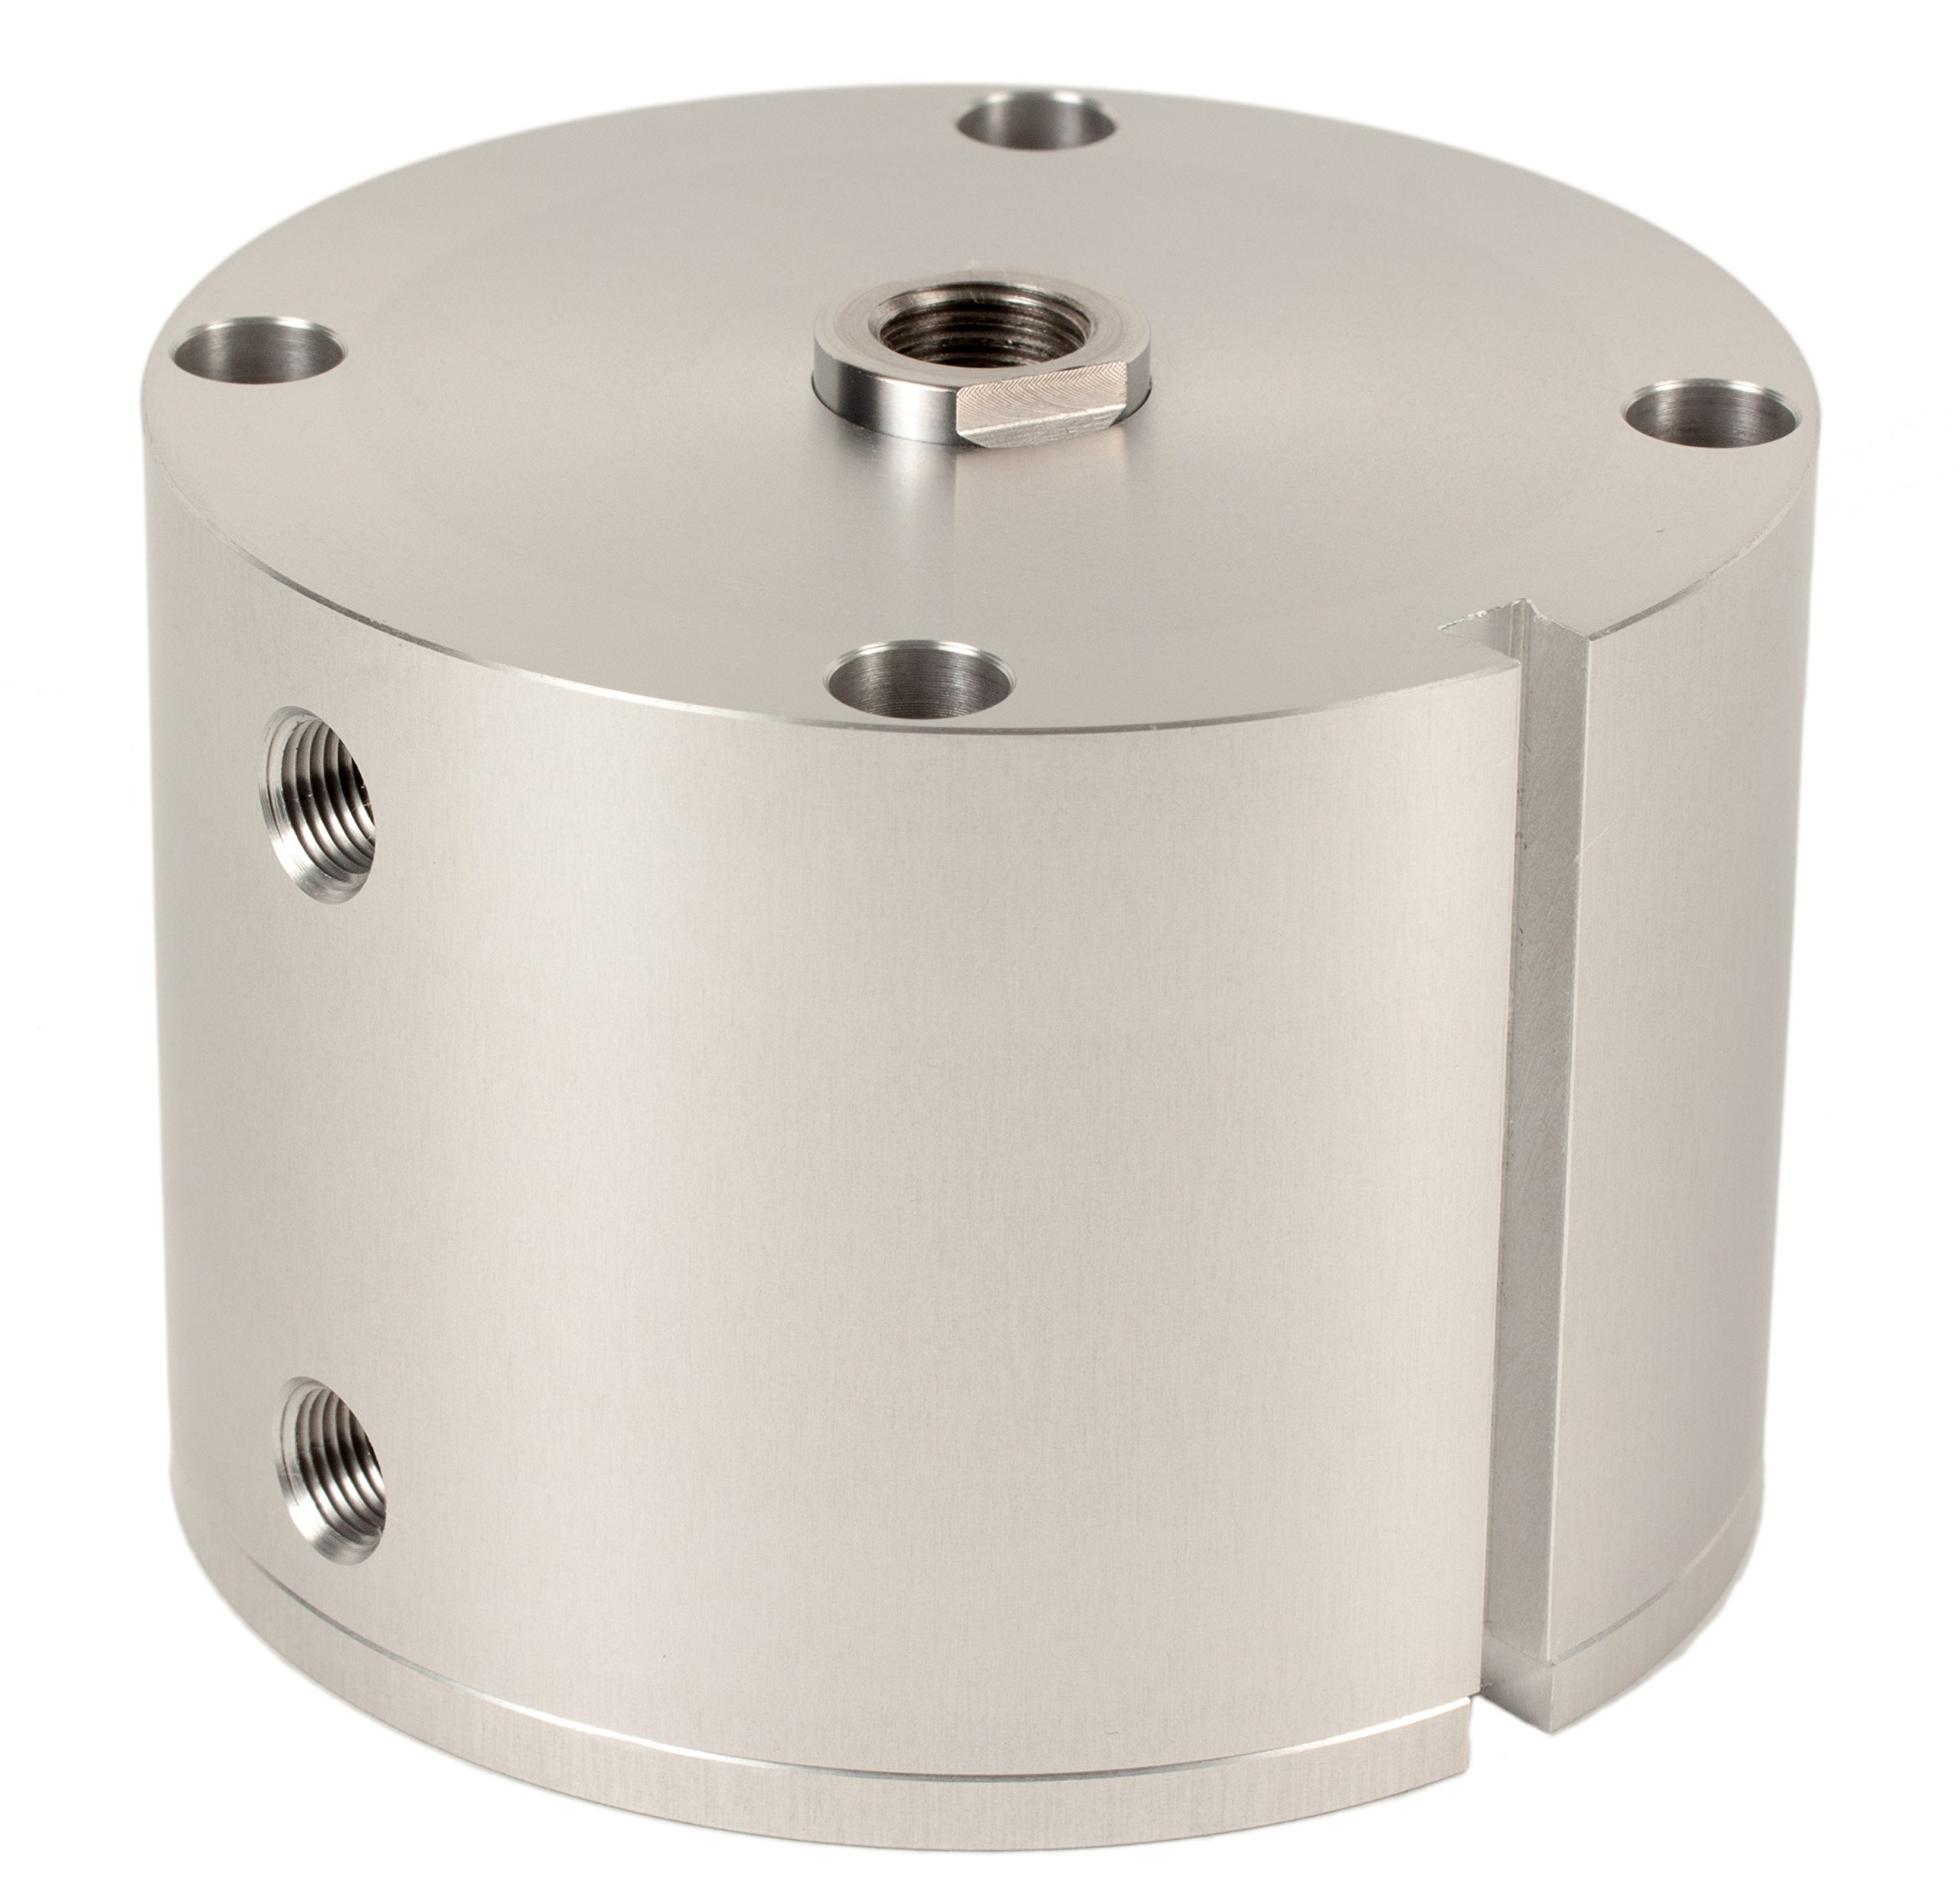 Fabco-Air D-521-X-E Original Pancake Cylinder, Double Acting, Maximum Pressure of 250 PSI, Switch Ready with Magnet, 2-1/2'' Bore Diameter x 1-1/2'' Stroke